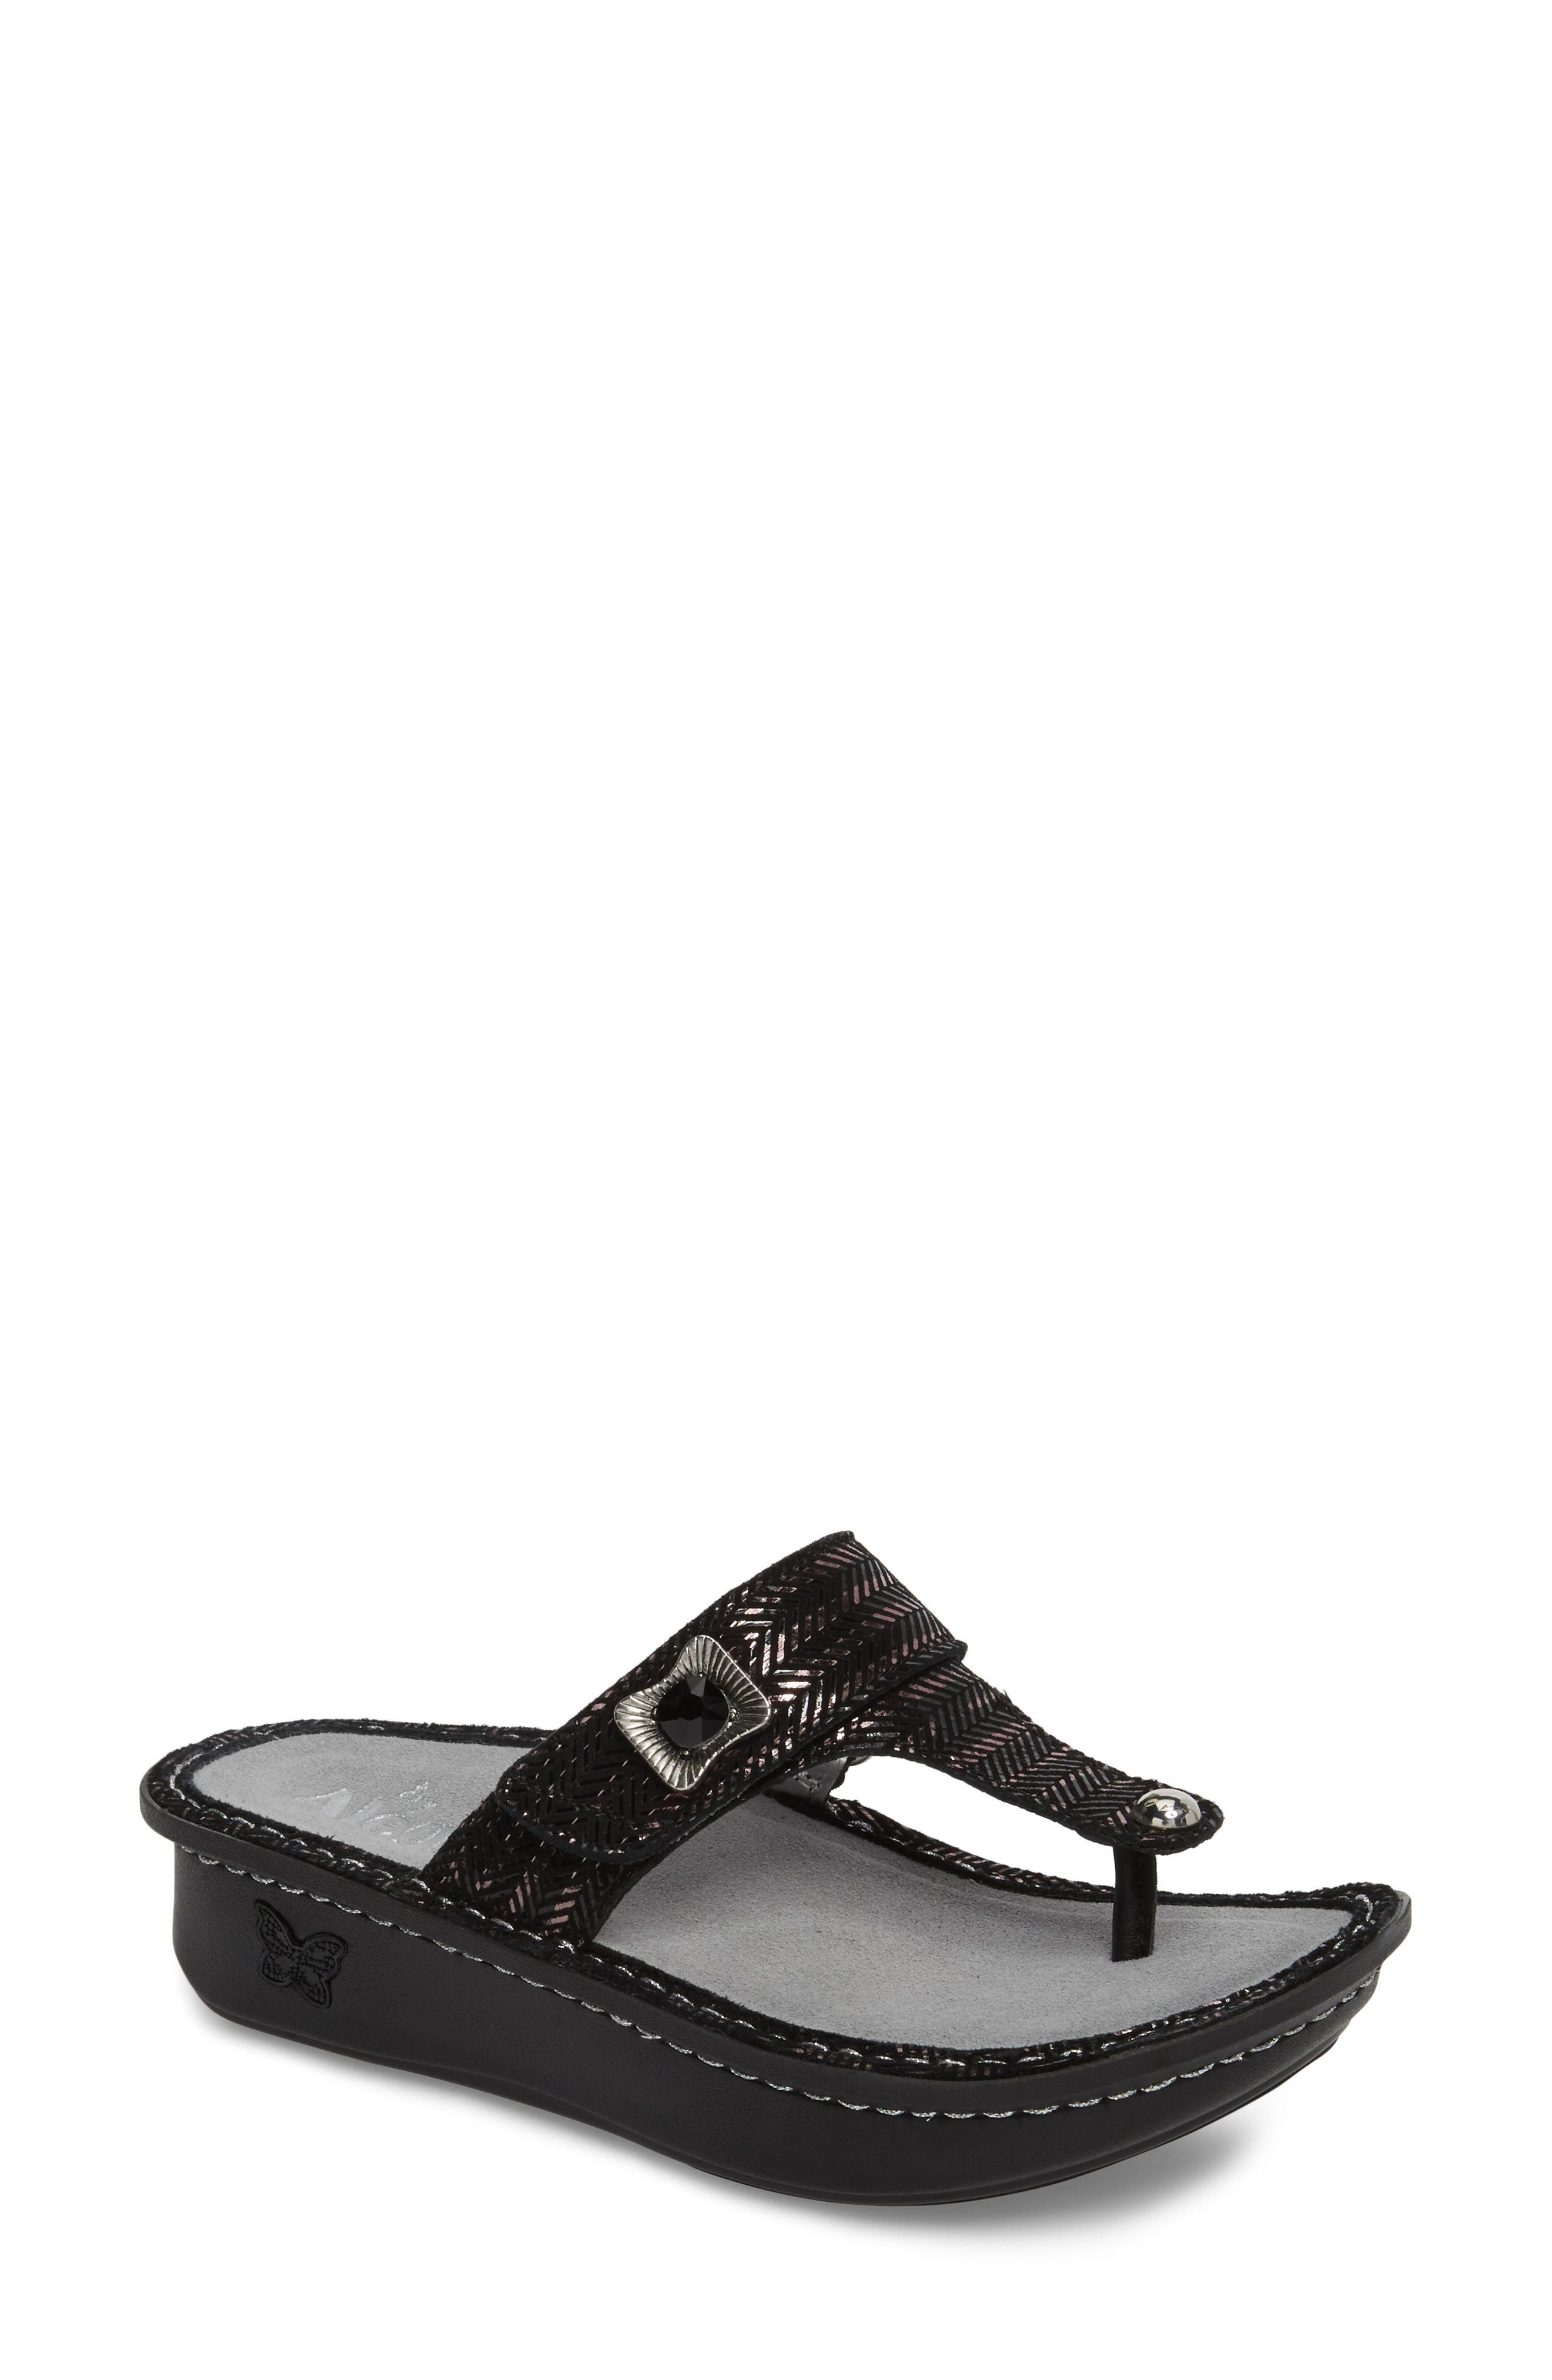 'Carina' Sandal,                         Main,                         color, CHAINED BLACK LEATHER